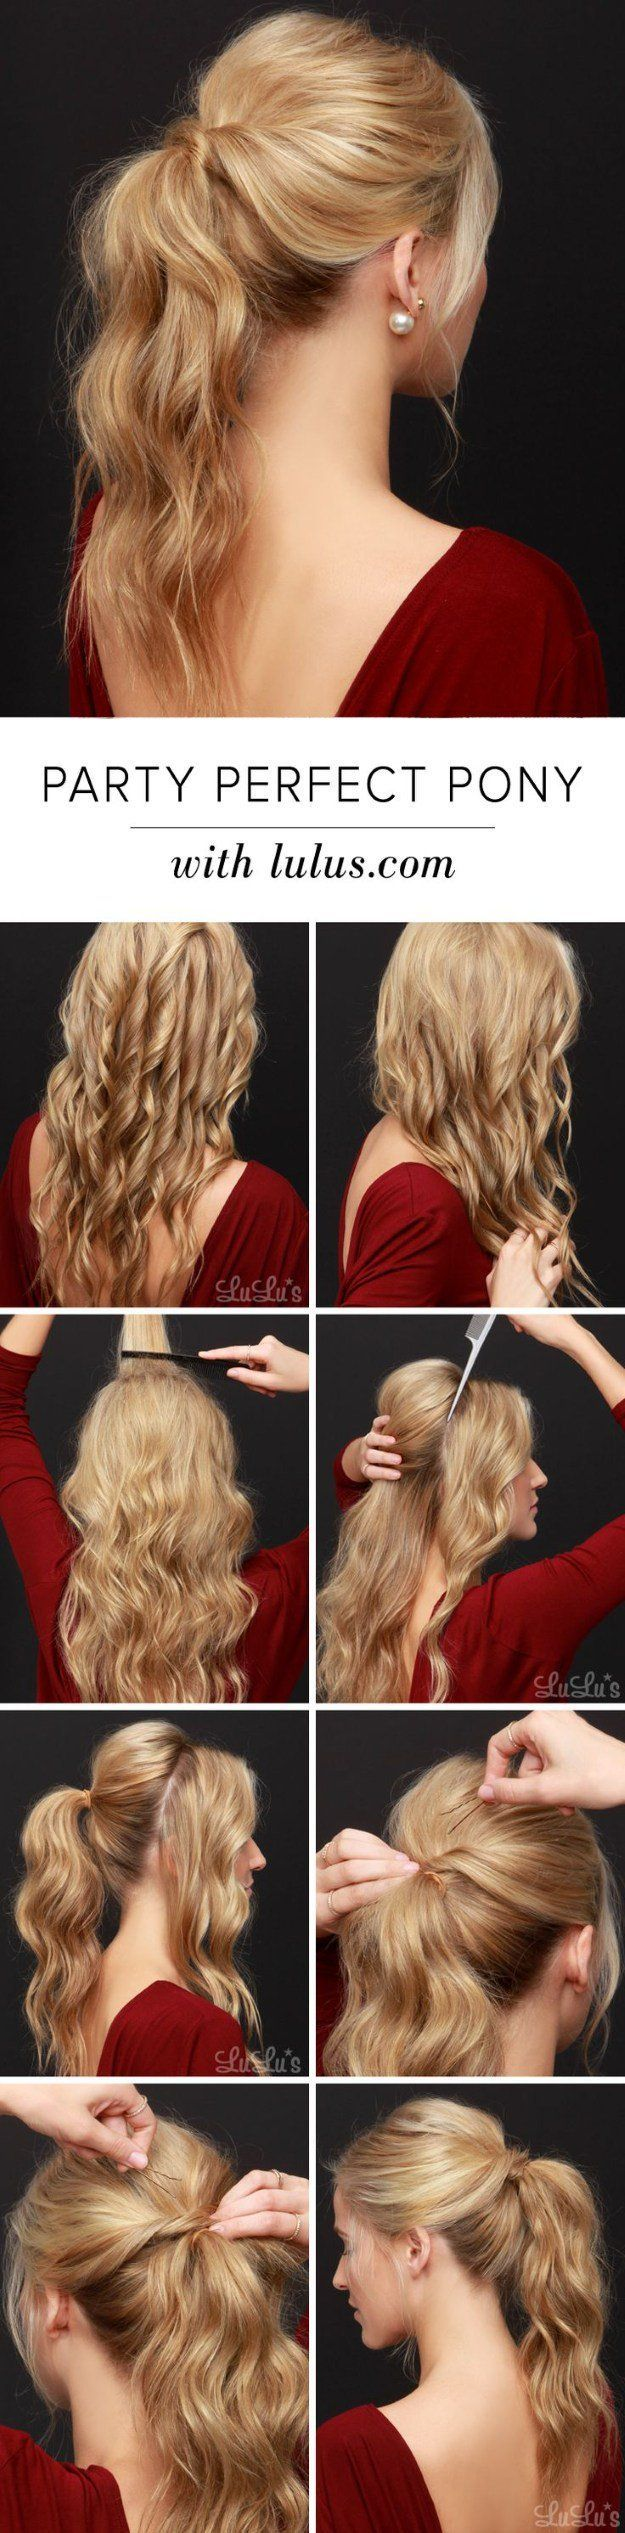 Hairstyles For Short Hair     Picture    Description  Ponytail is every woman's best friend; its the go to option for bad hair days, fancy events or even casual outings.check out these ponytails     https://looks.tn/hairstyles/short/hairstyles-for-short-hair-ponytail-is-every-womans-best-friend-its-the-go-to-option-for-bad-hair-day-6/